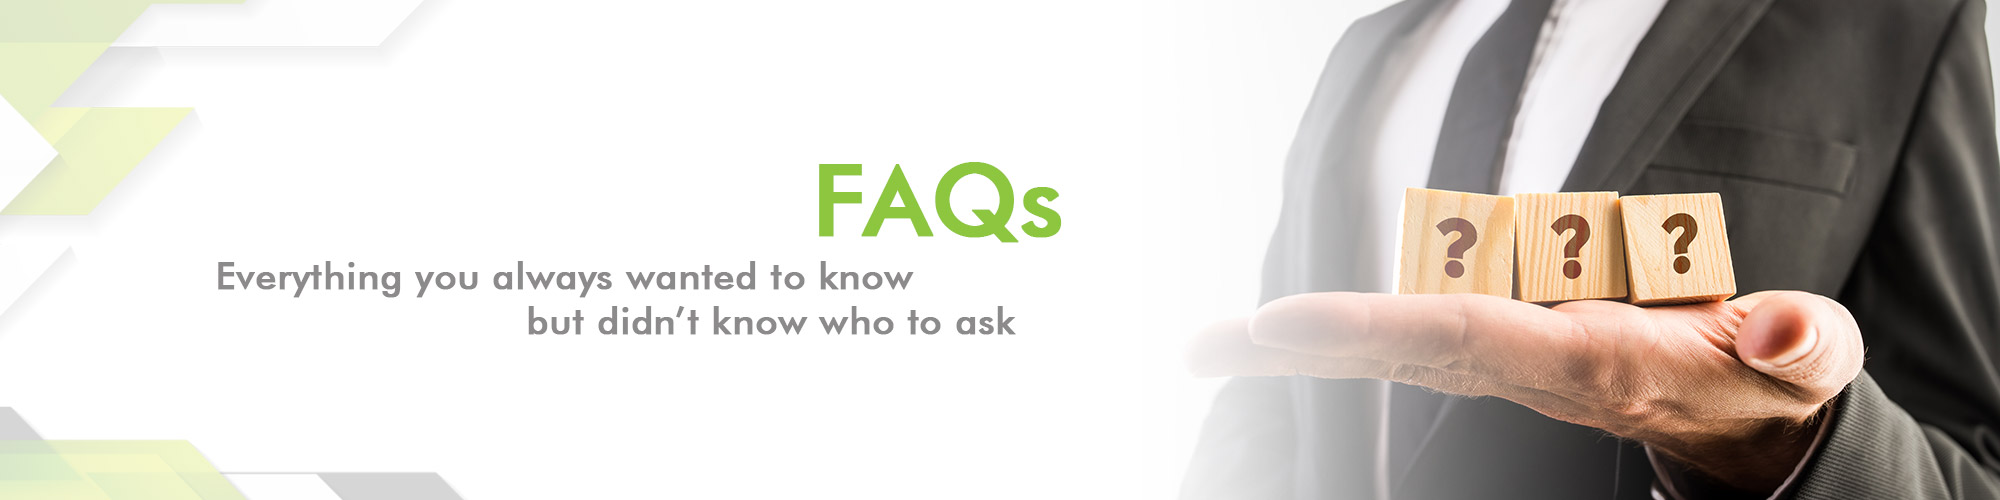 FAQS - Ask Tours From Hurghada